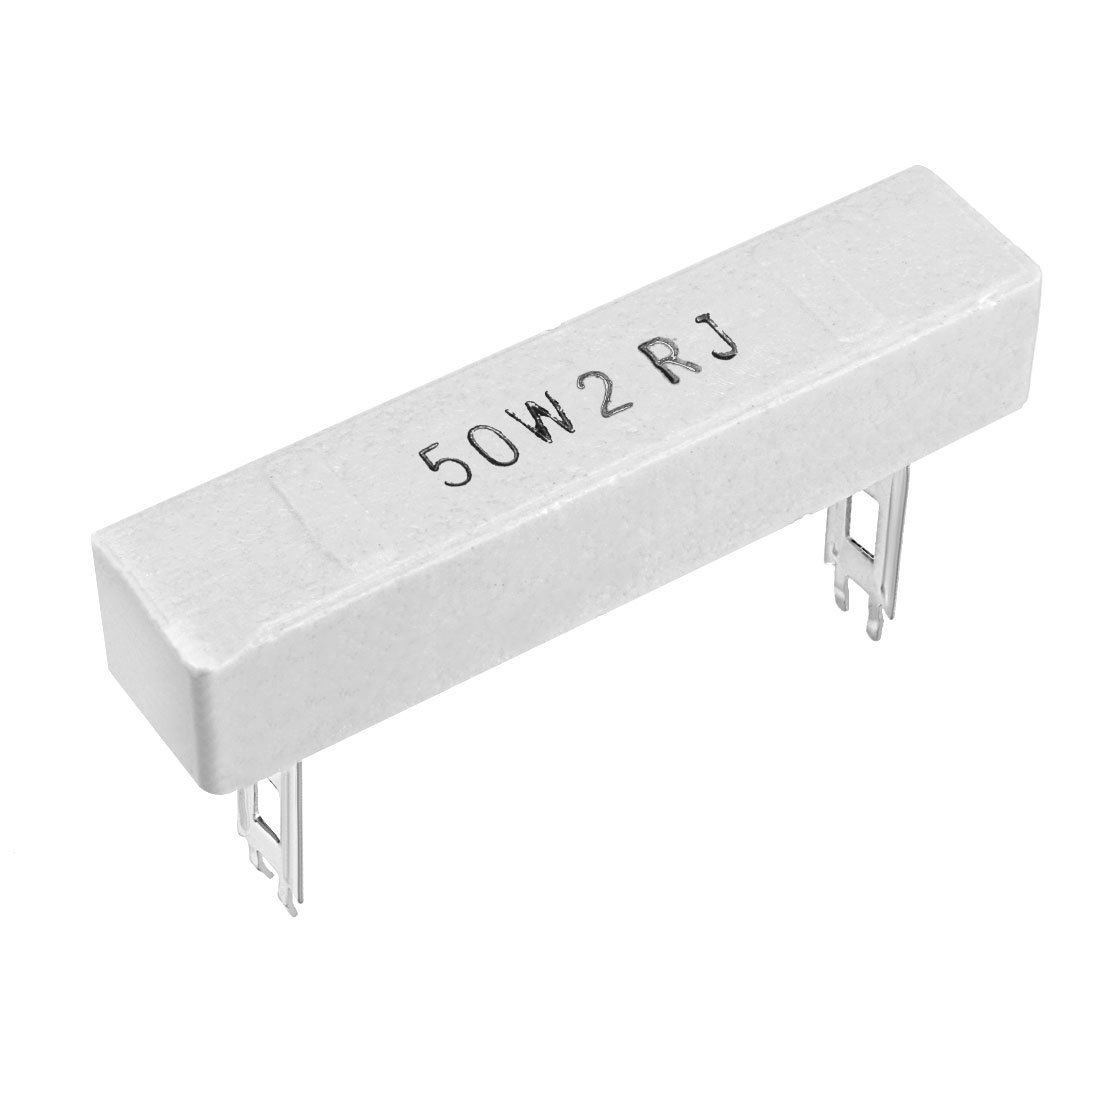 uxcell 10W 10k Ohm Power Resistor Ceramic Cement Resistor Axial Lead 5 Pcs White a18033000ux0016